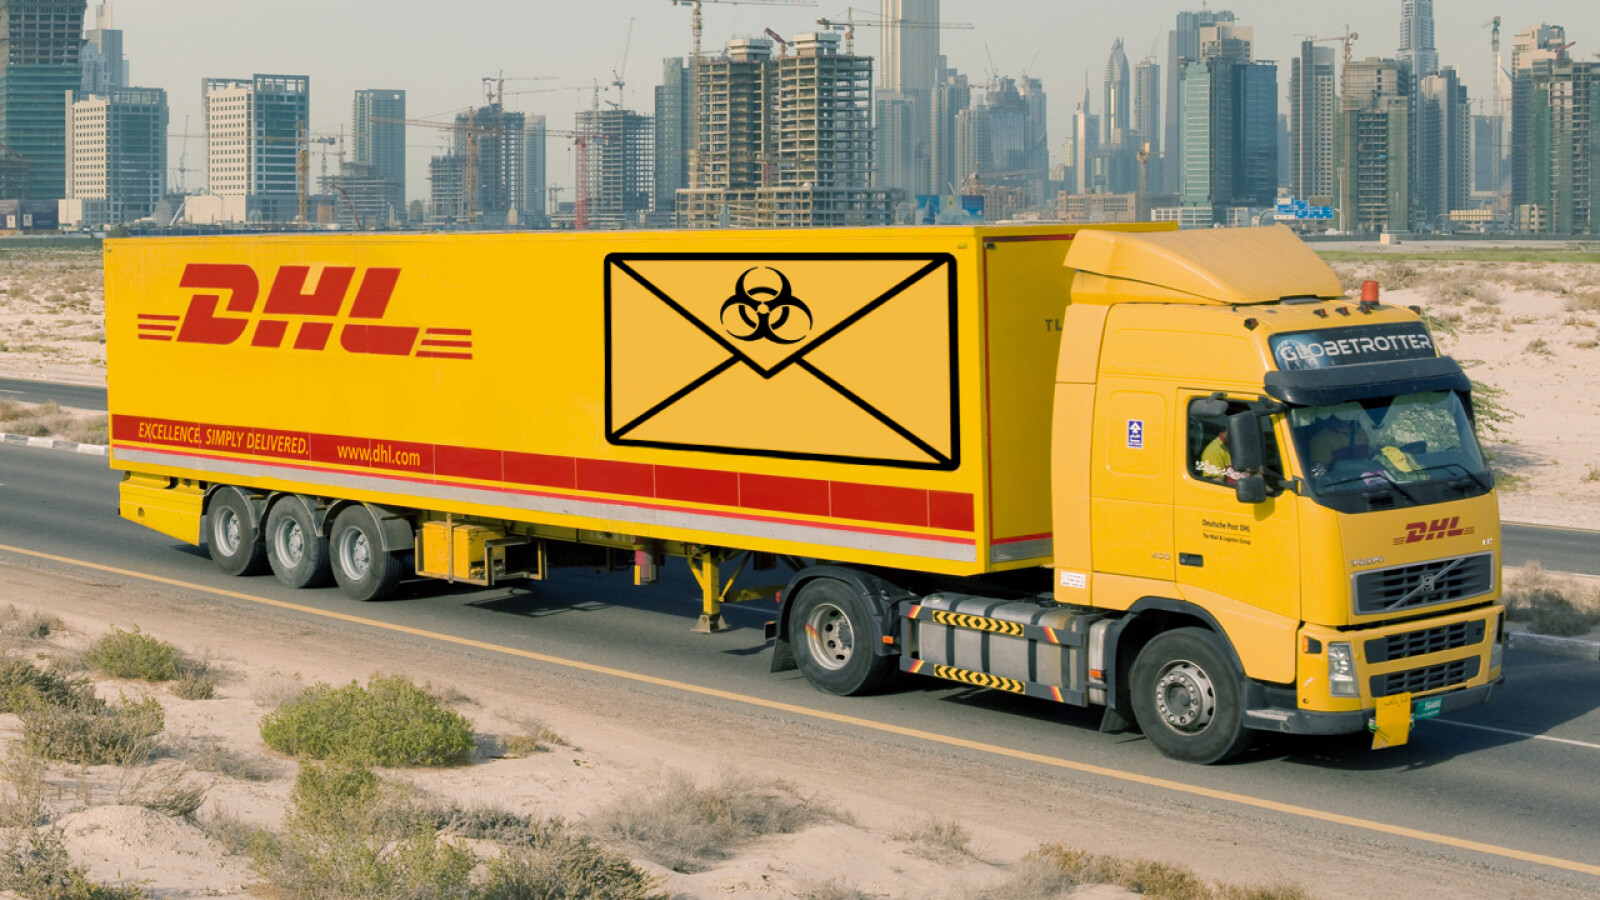 dhl paketank ndigung informationen zu ihrem paket ist phishing netzwelt. Black Bedroom Furniture Sets. Home Design Ideas